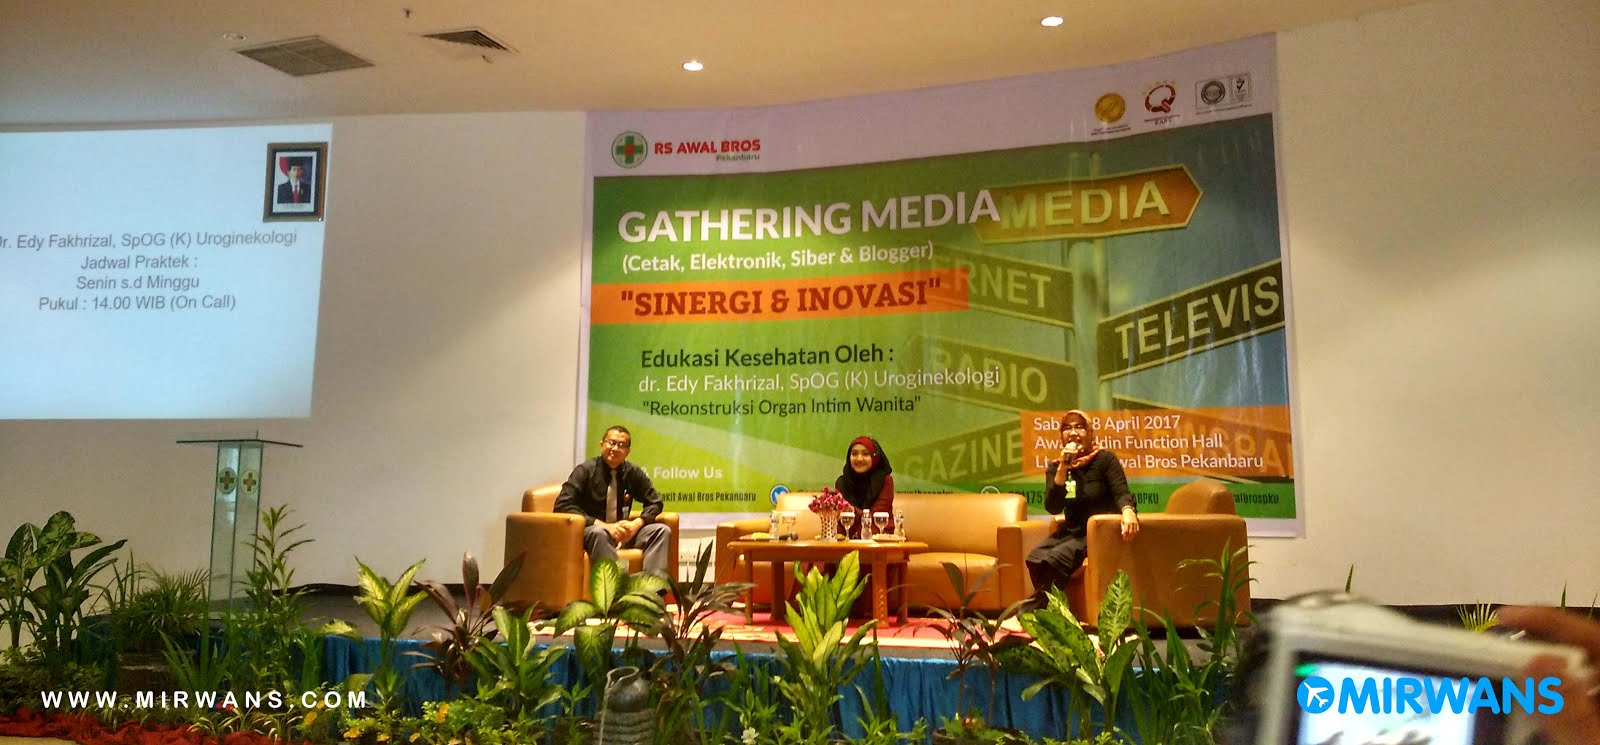 Gathering Media Bareng RS Awal Bros Pekanbaru